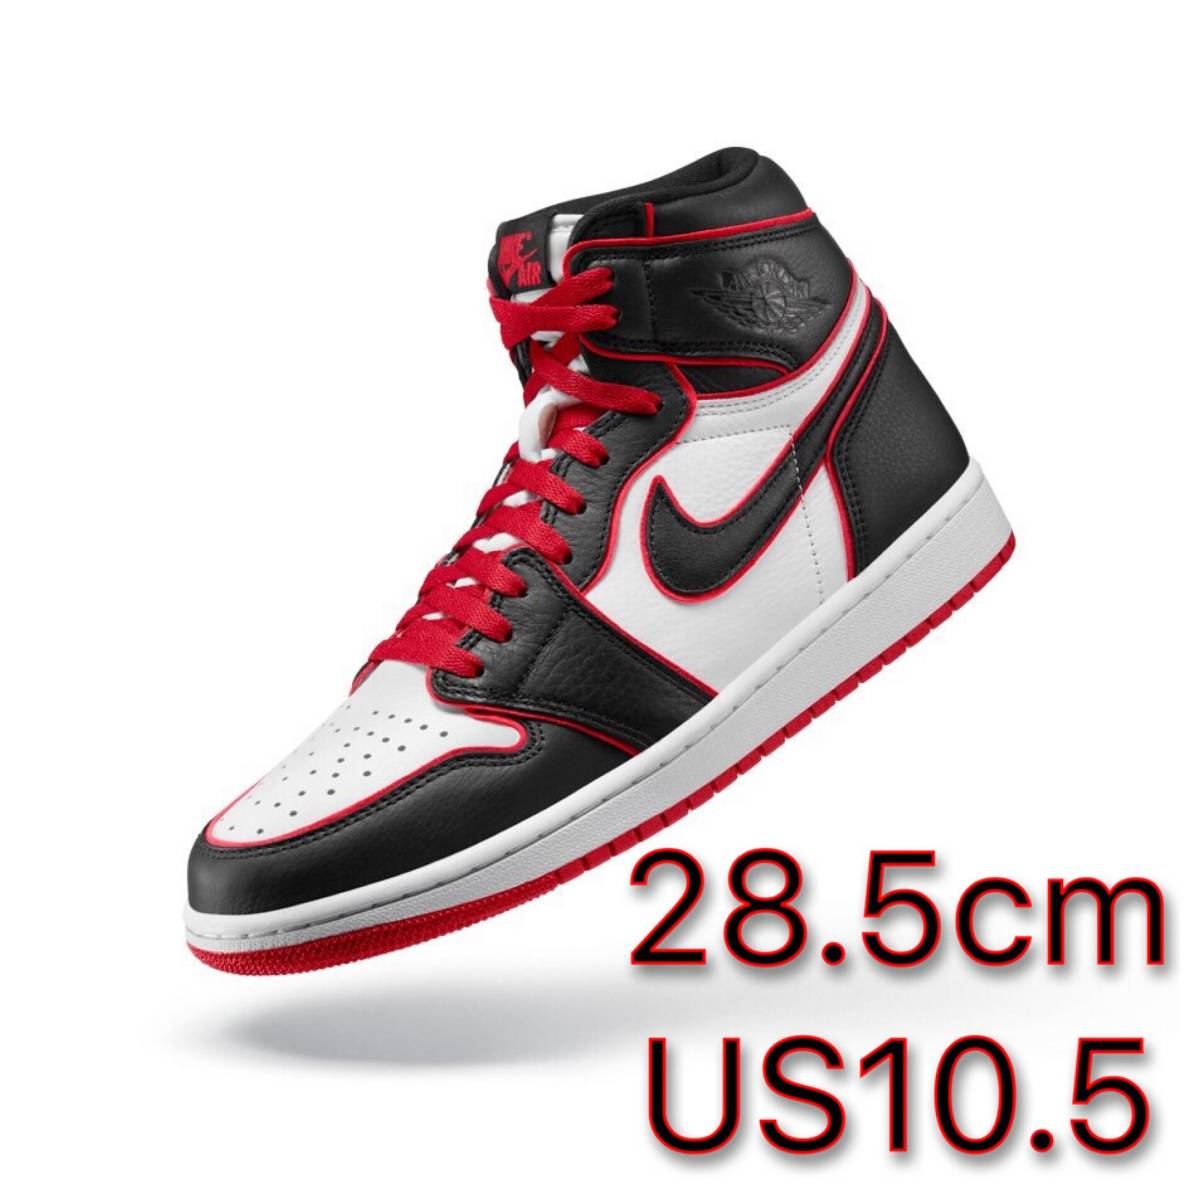 "28.5cm US10.5 NIKE AIR JORDAN 1 RETRO HIGH OG ""BLOODLINE"" WHO SAID MAN WAS NOT MEANT TO FLY ナイキエアジョーダン off-white dunk"